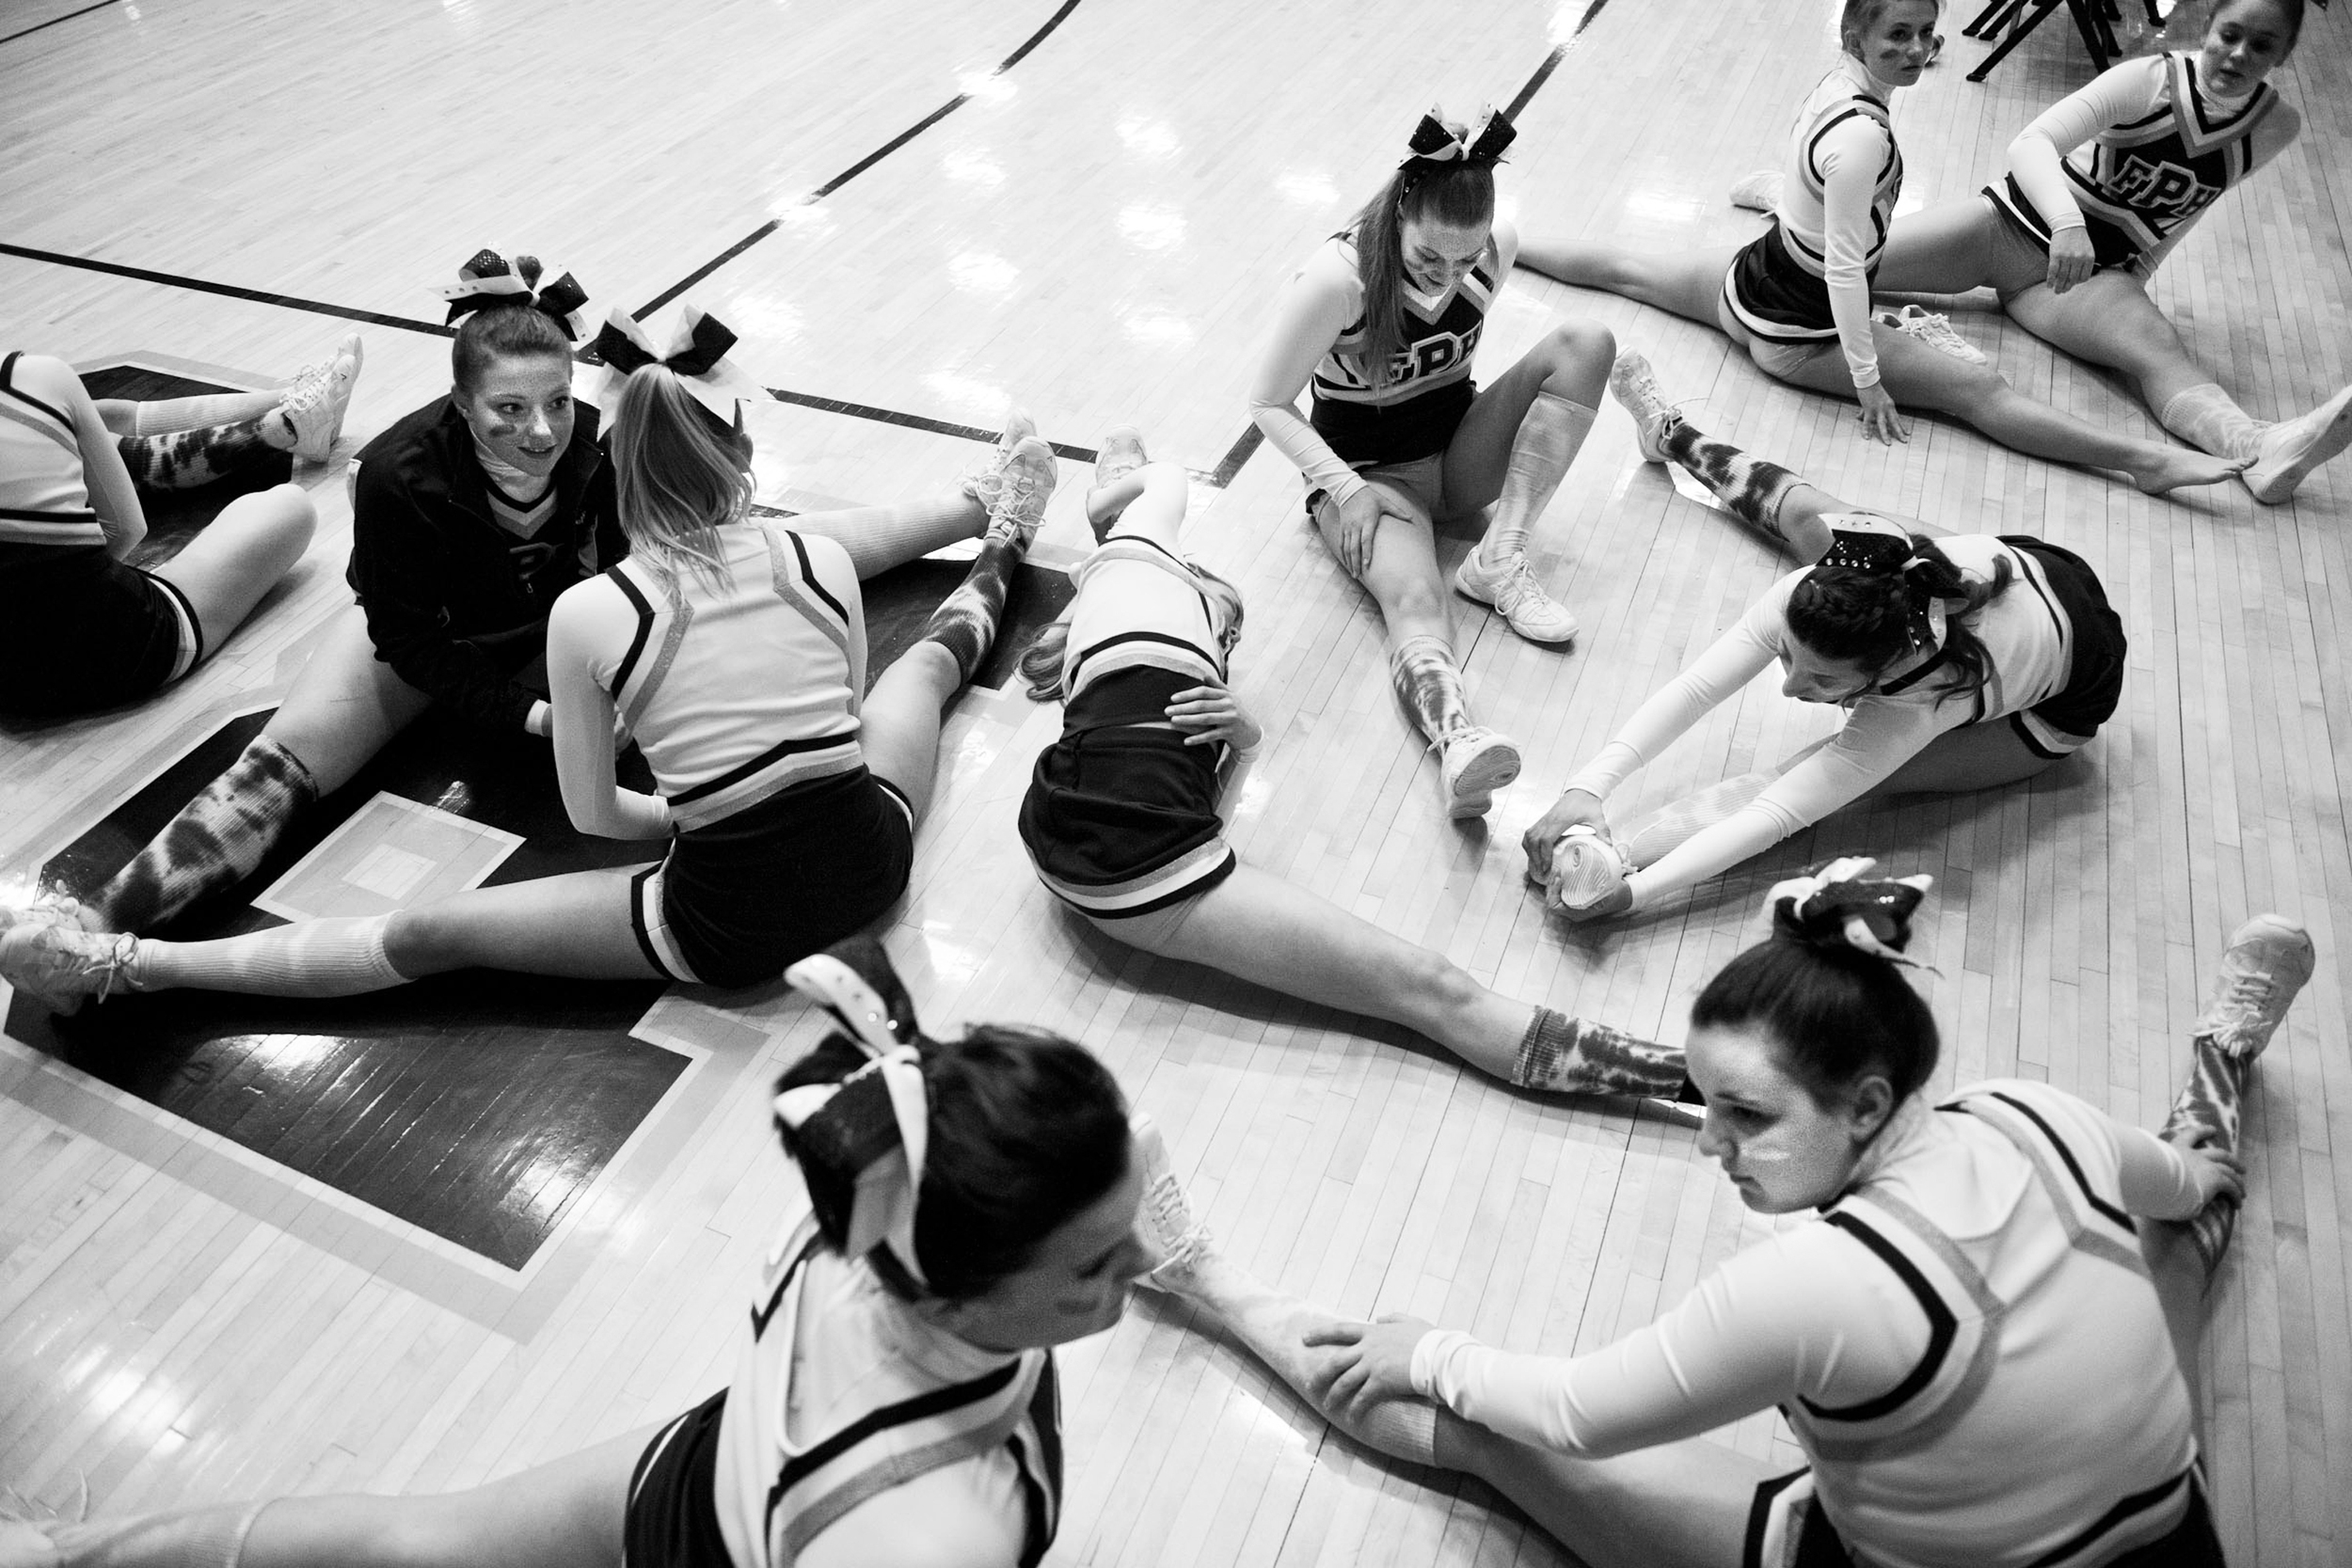 Forest Park's varsity cheerleading squad stretched before the game against Mater Dei in the IHSAA Class 2A sectional tournament in Boonville on Friday. The Rangers lost 68-57.